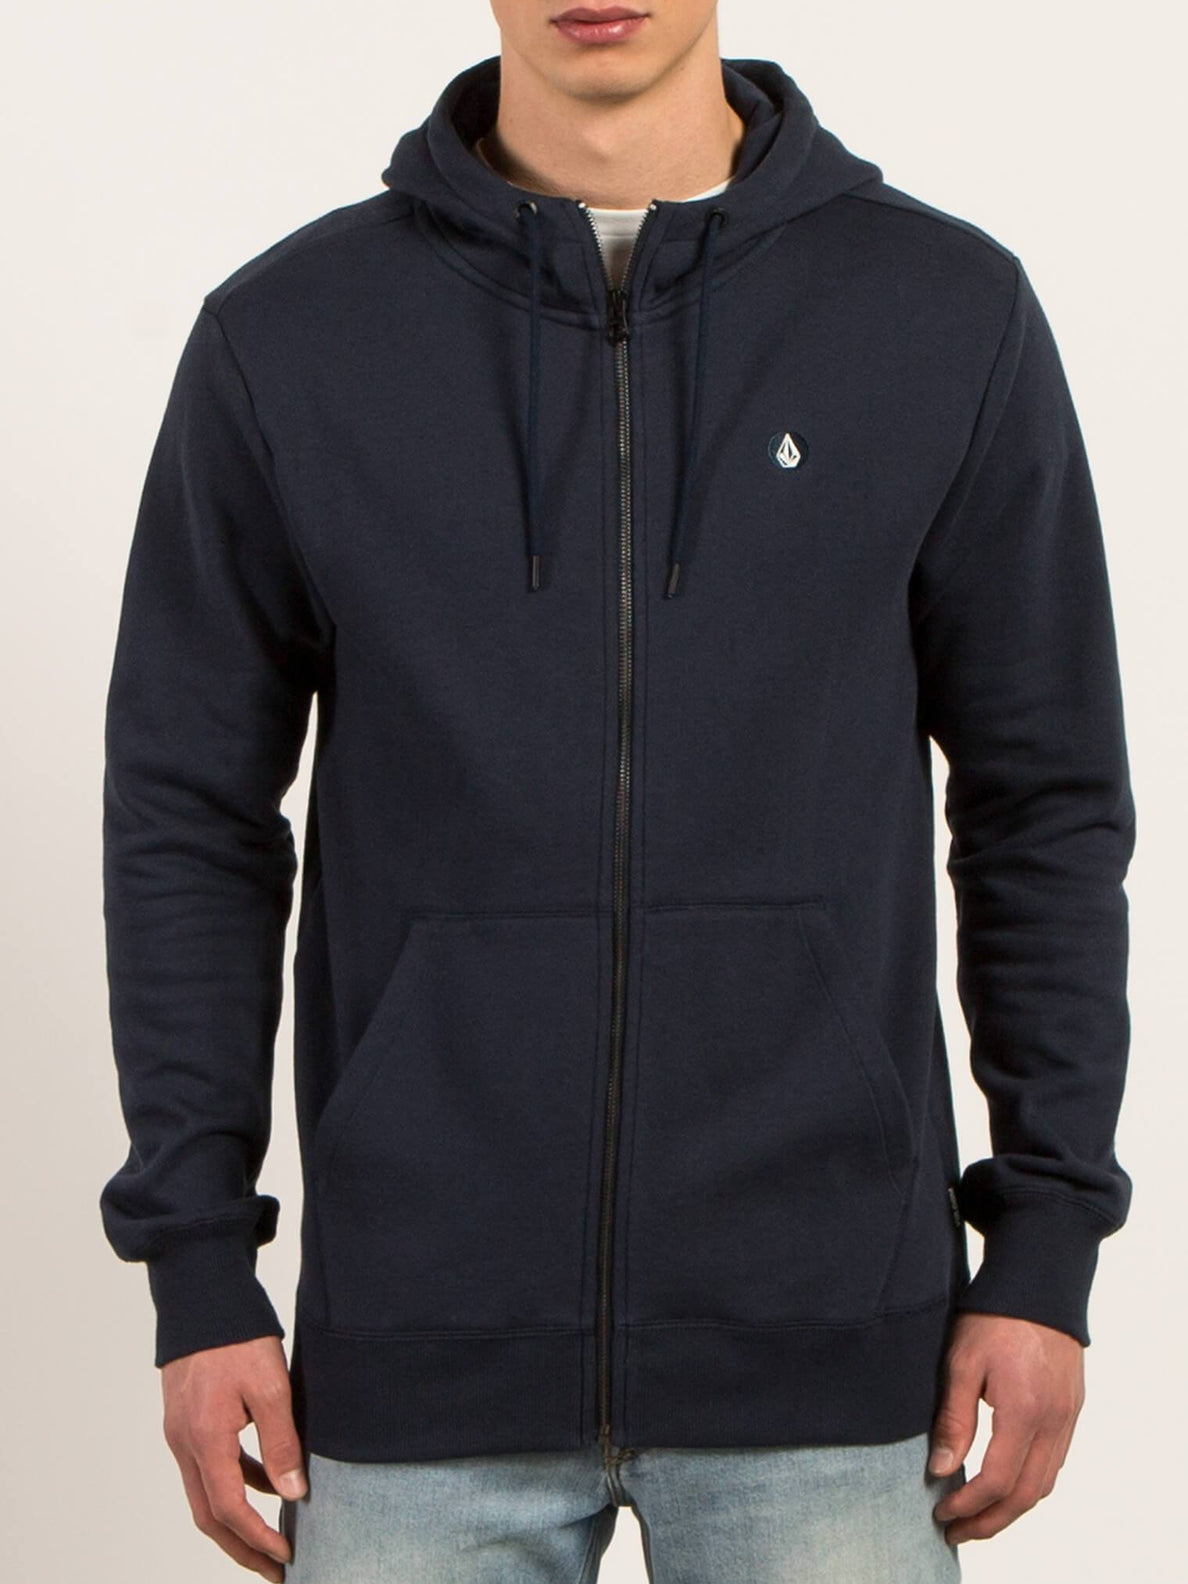 Single Stone Zip Hoodie - Navy